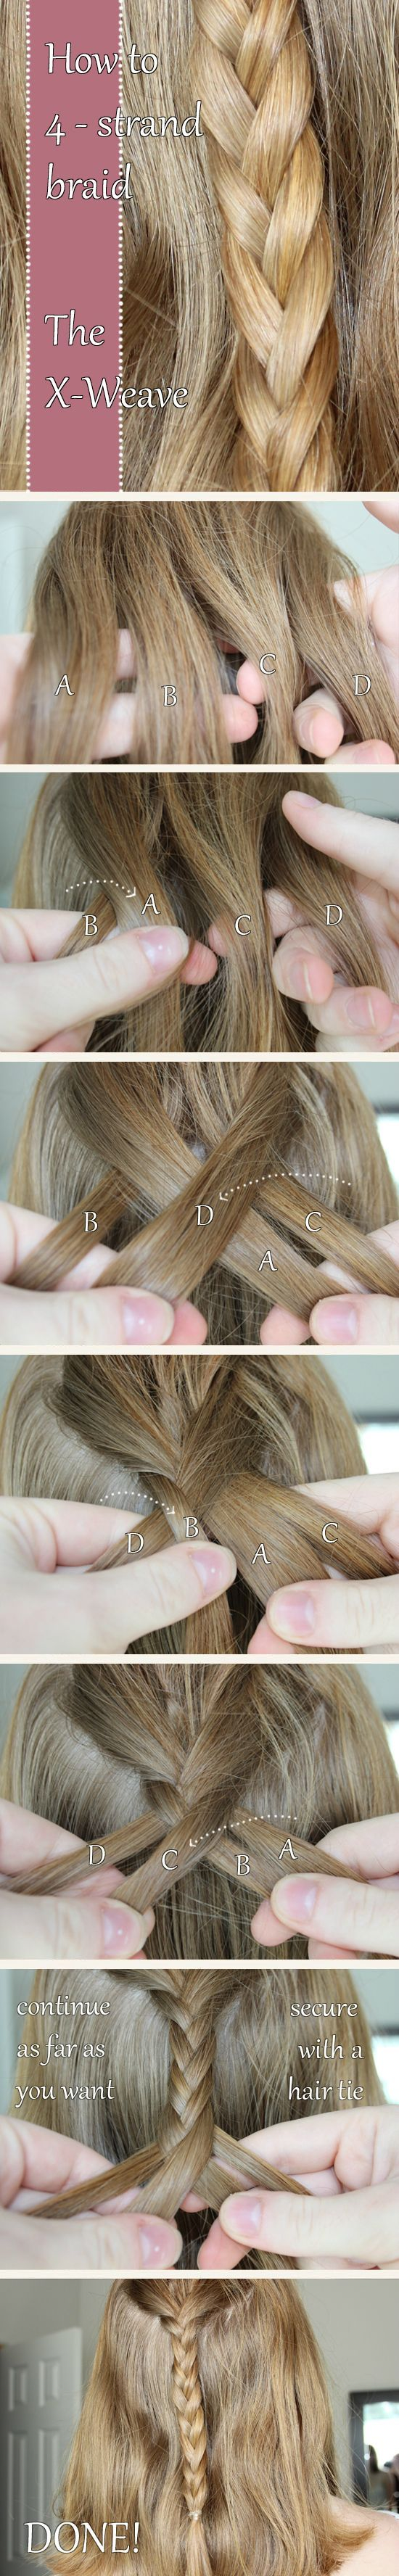 How to 4-strand braid - the X-Weave (xpost /r/FancyFollicles) - Imgur